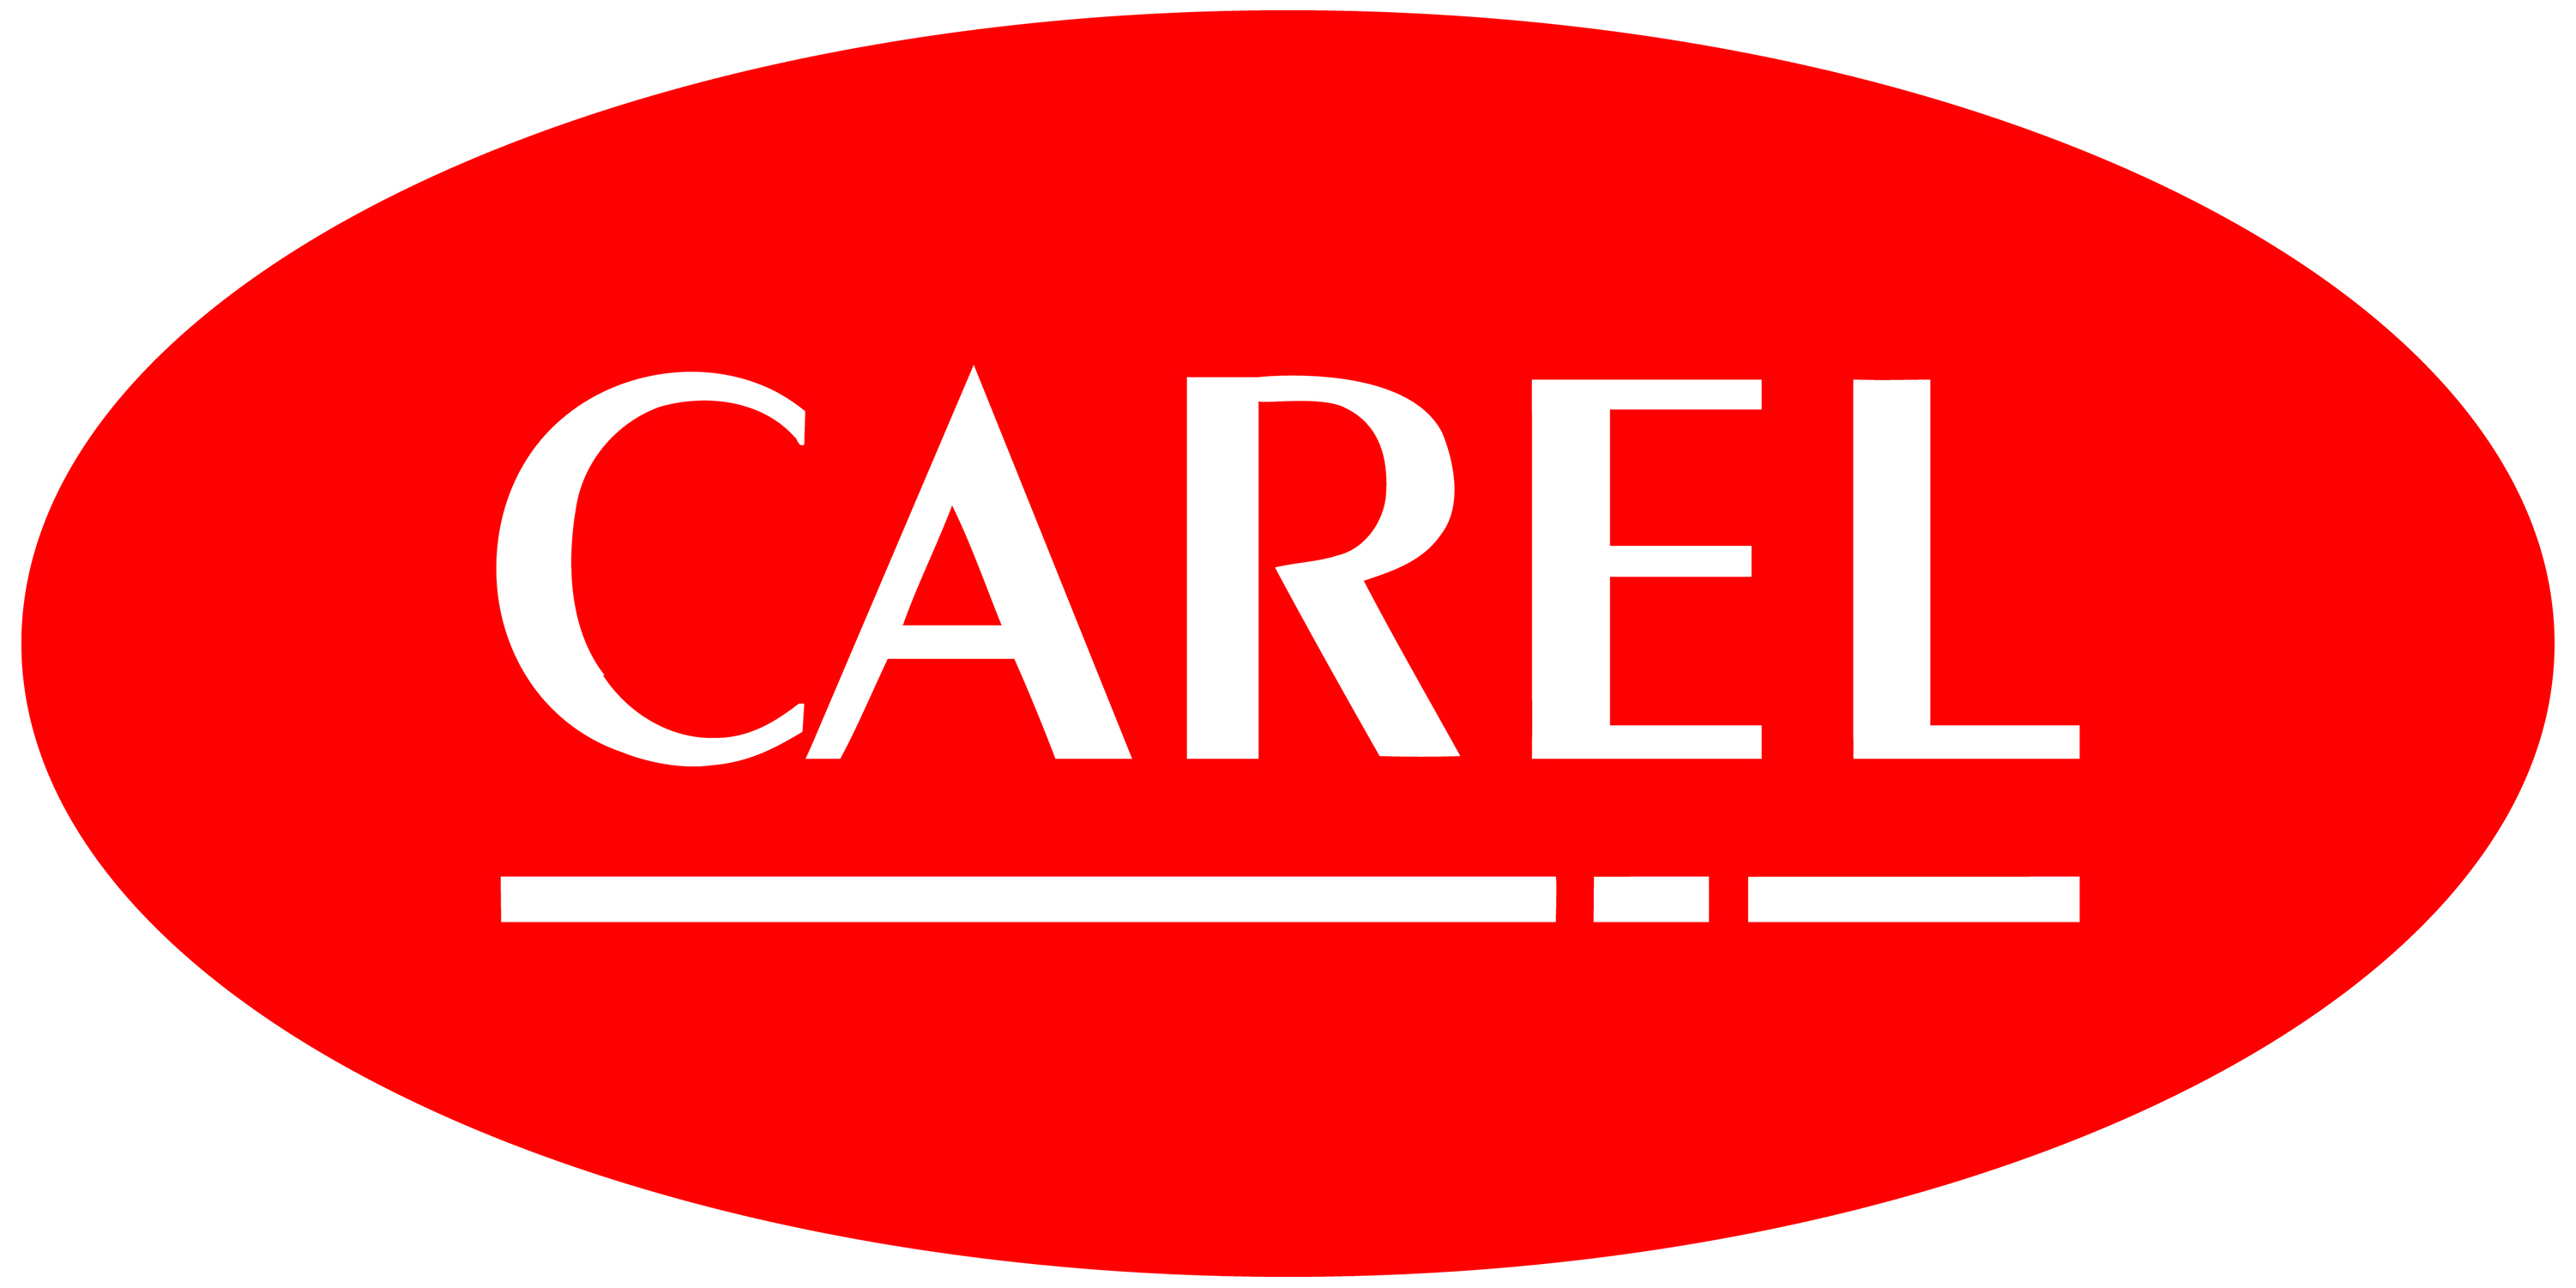 CAREL - Connectivity